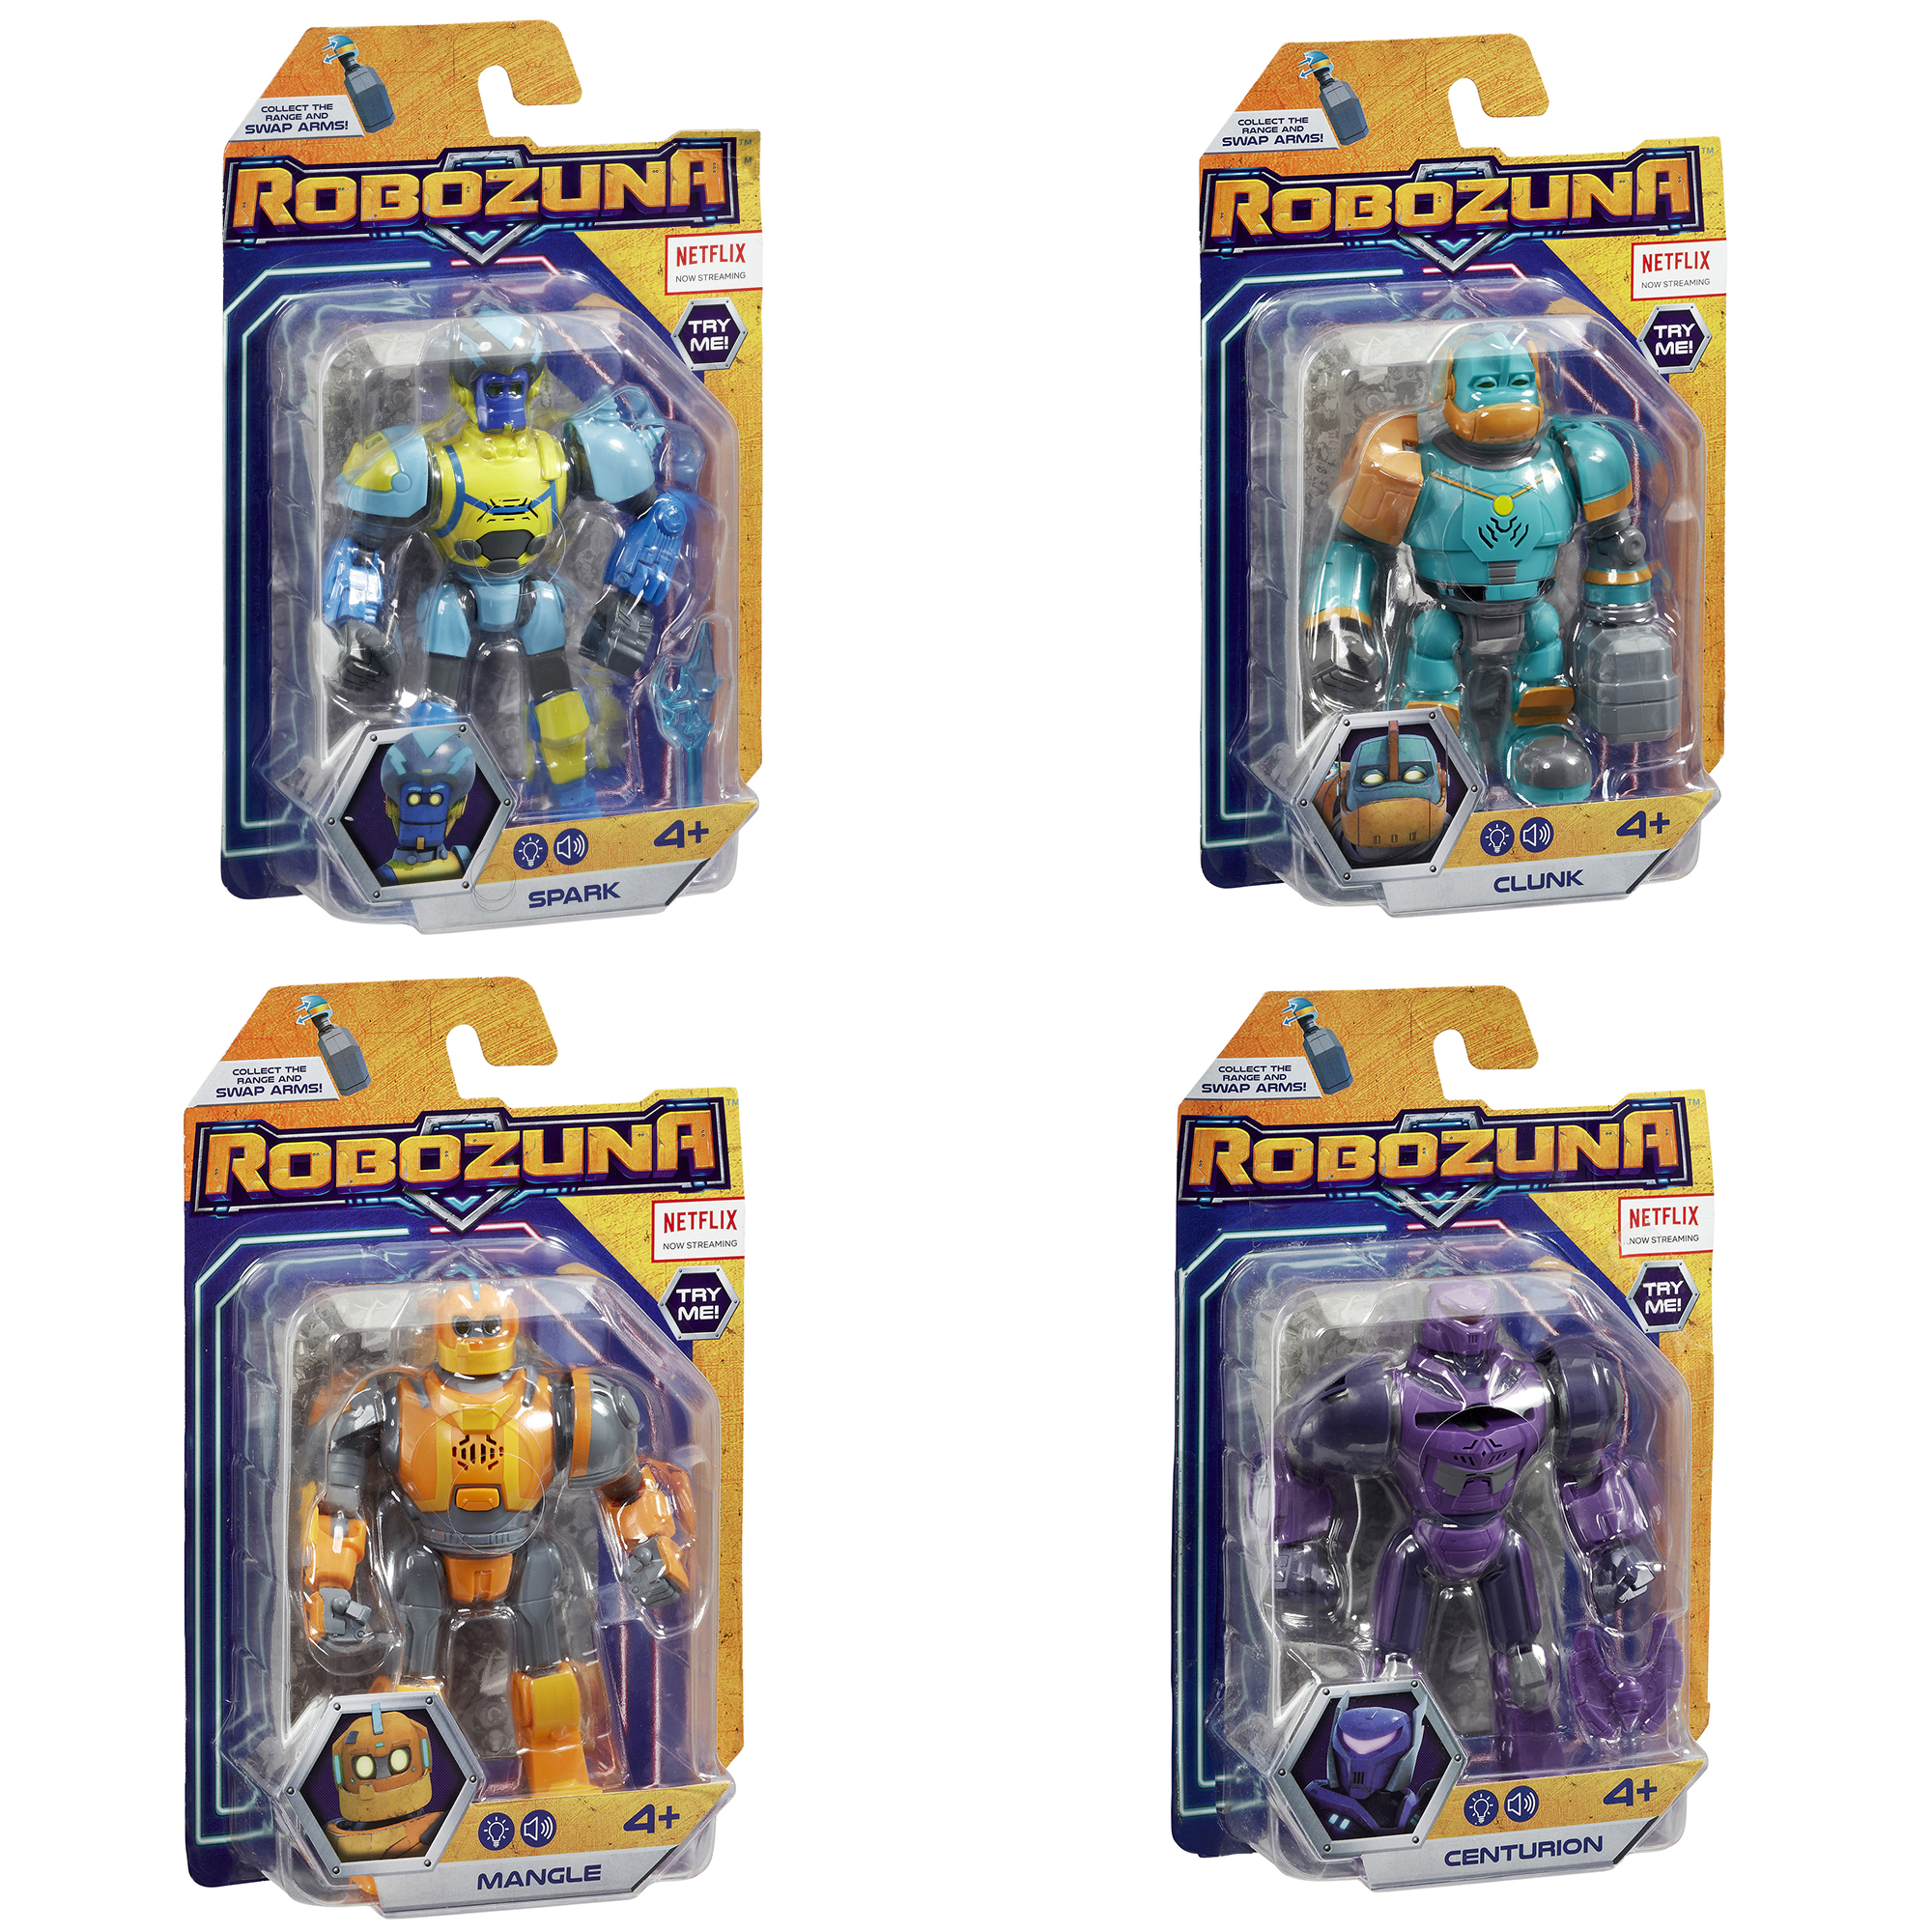 Robozuna 12.5cm Action Figures Assortment